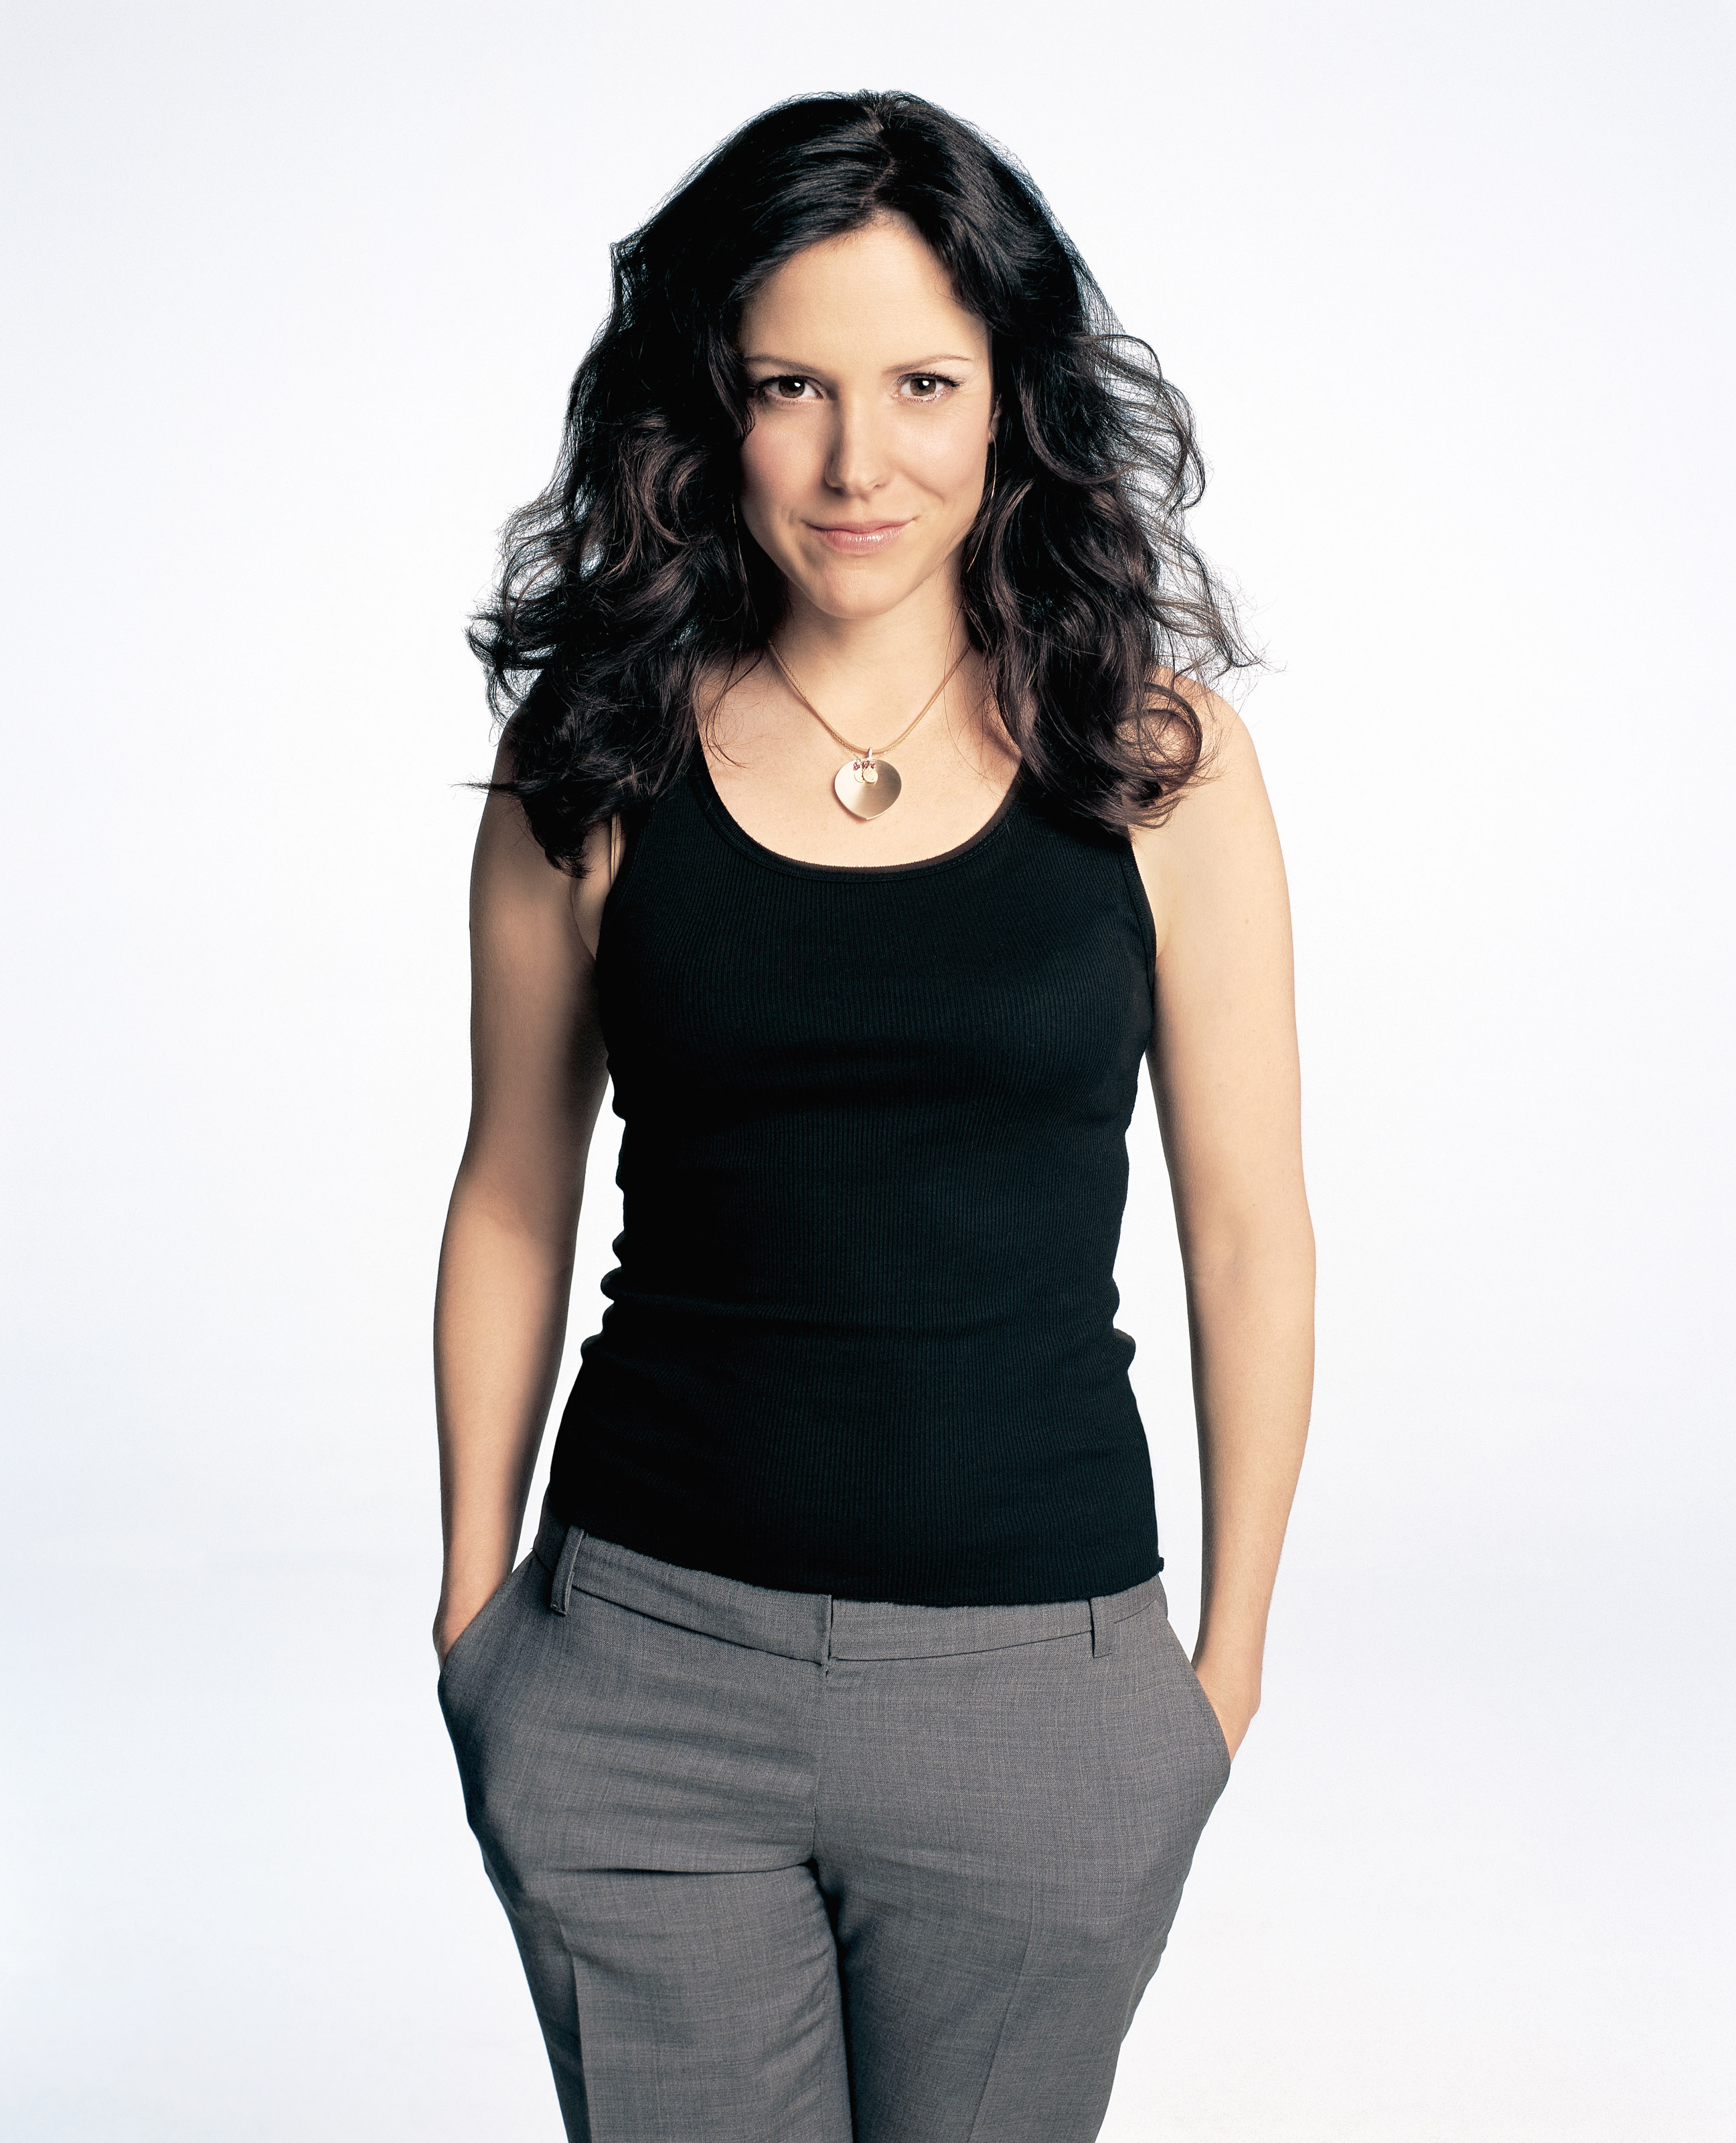 Weeds Mary-Louise Parker and Cast pictures | DVDbash